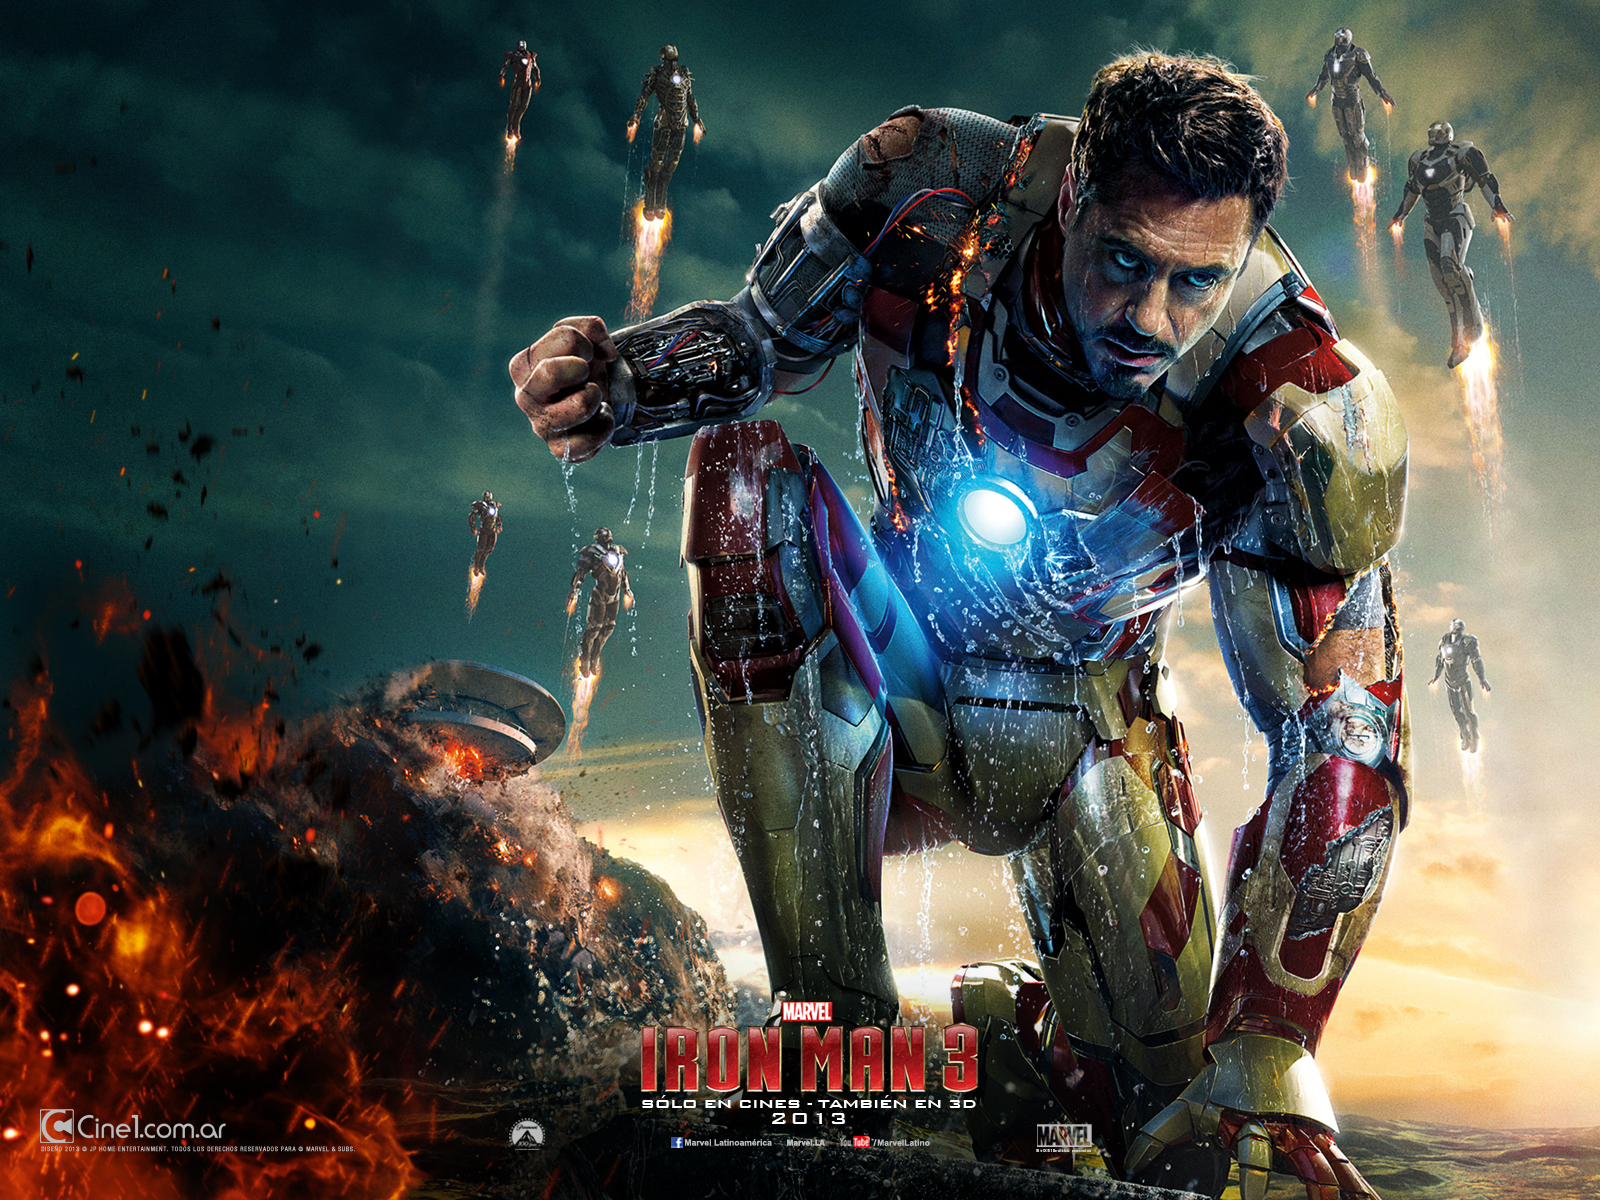 Nuevo wallpaper latino de IRON MAN 3 (Diferentes resoluciones)